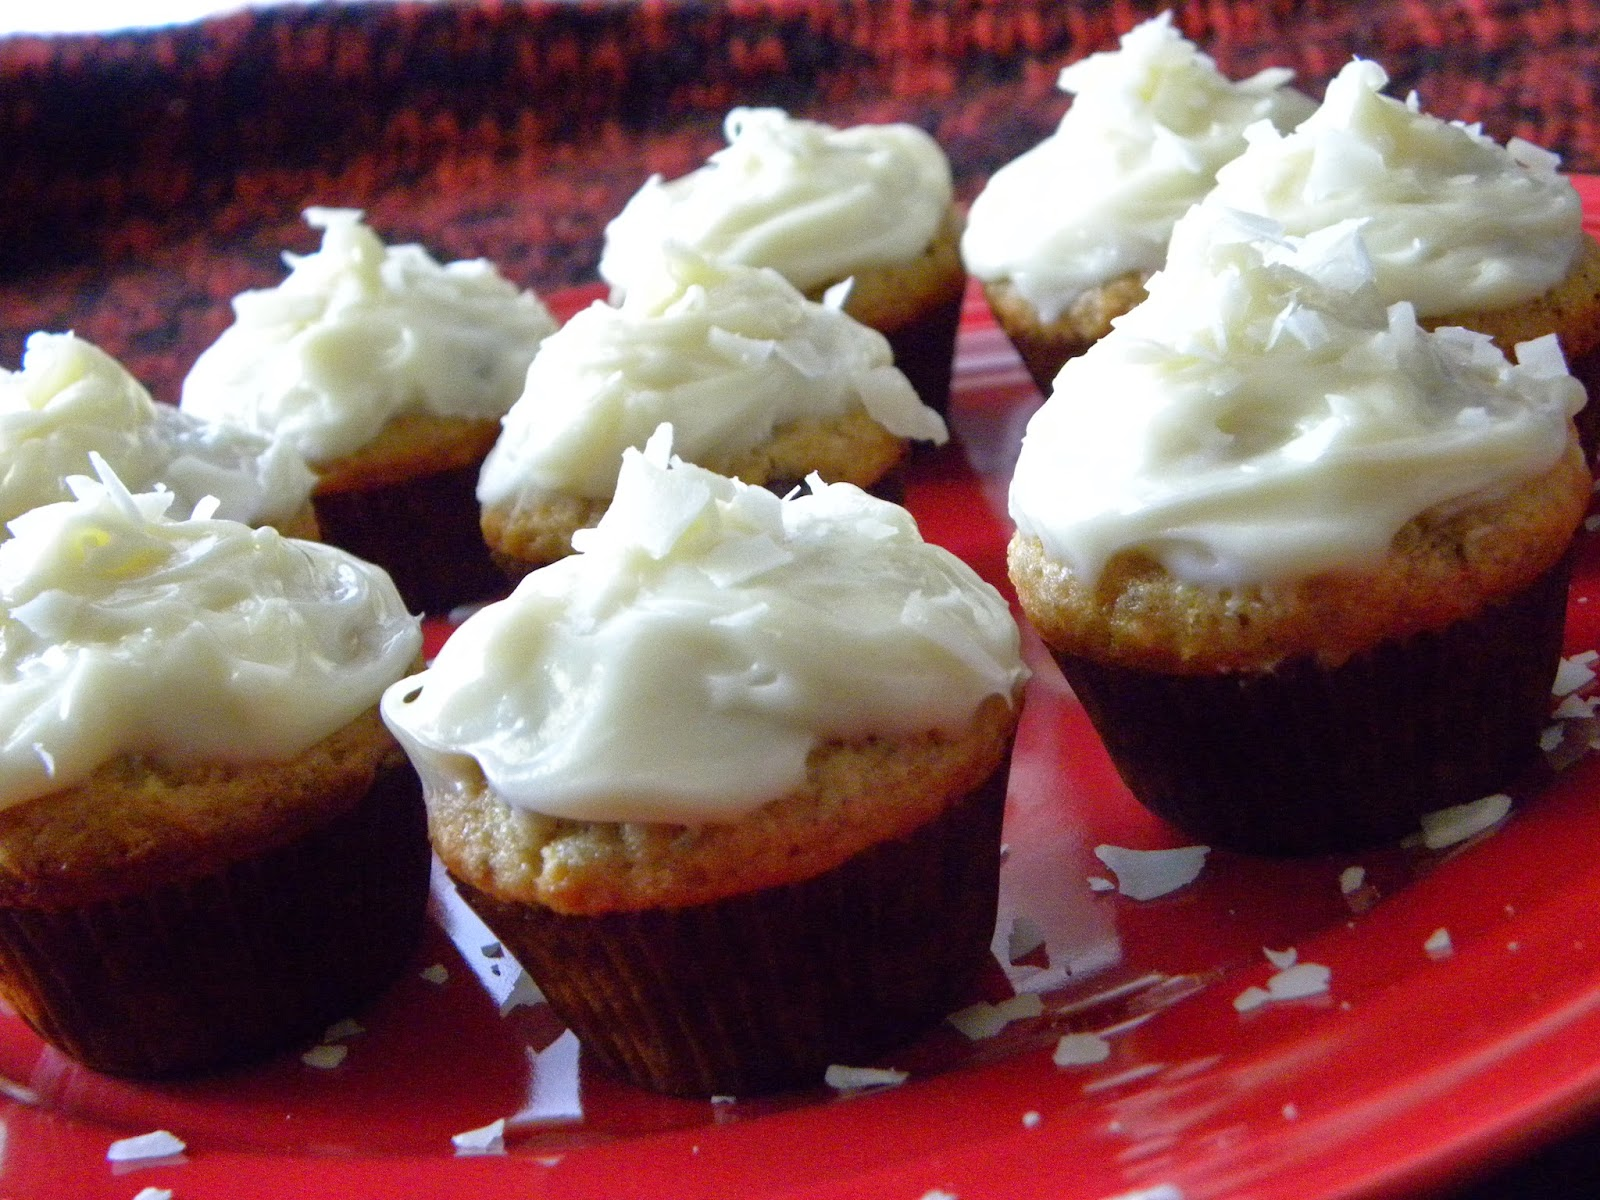 Light and airy cupcakes with a tropical flavor, topped with delicious frosting